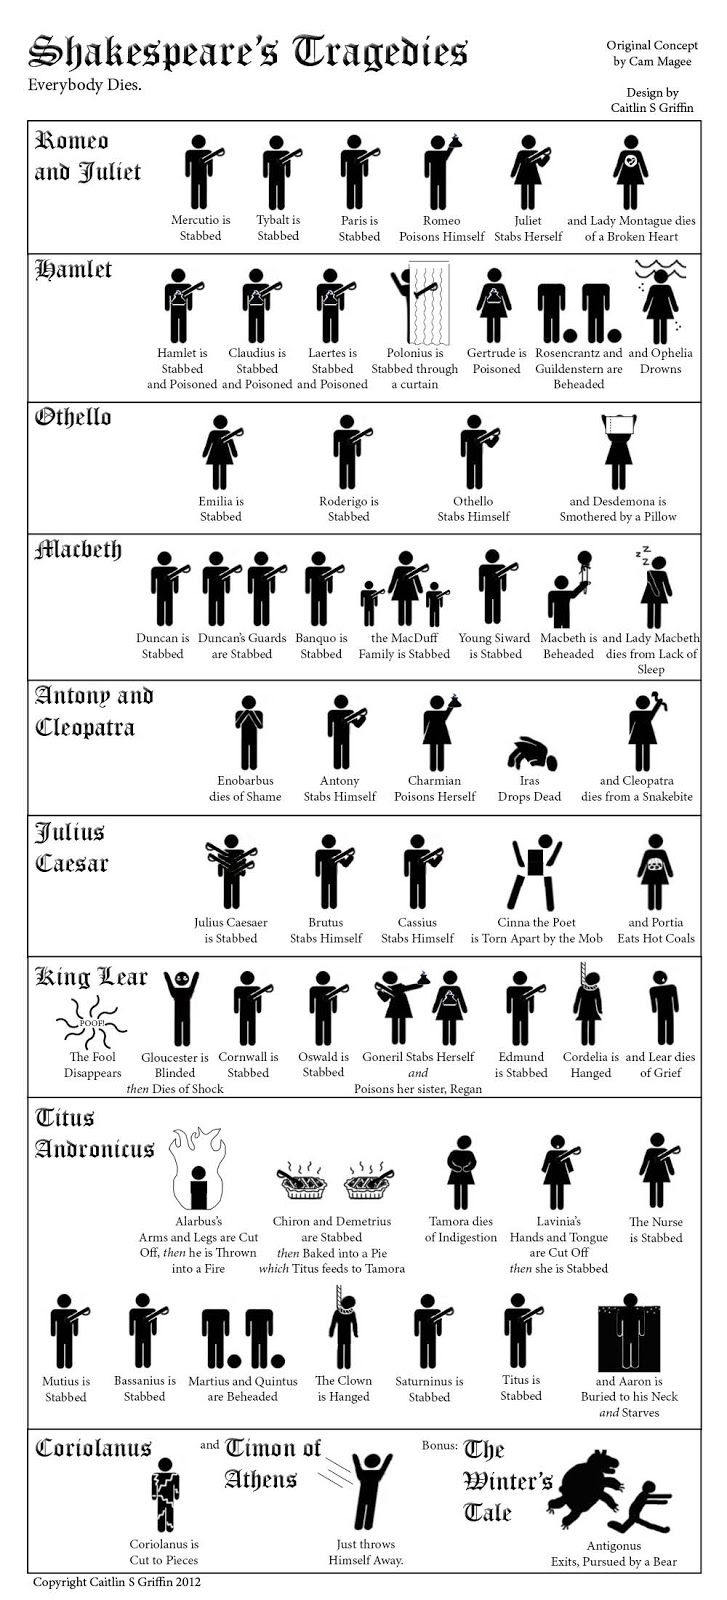 Shakespeare's Tragedies (Everybody Dies)